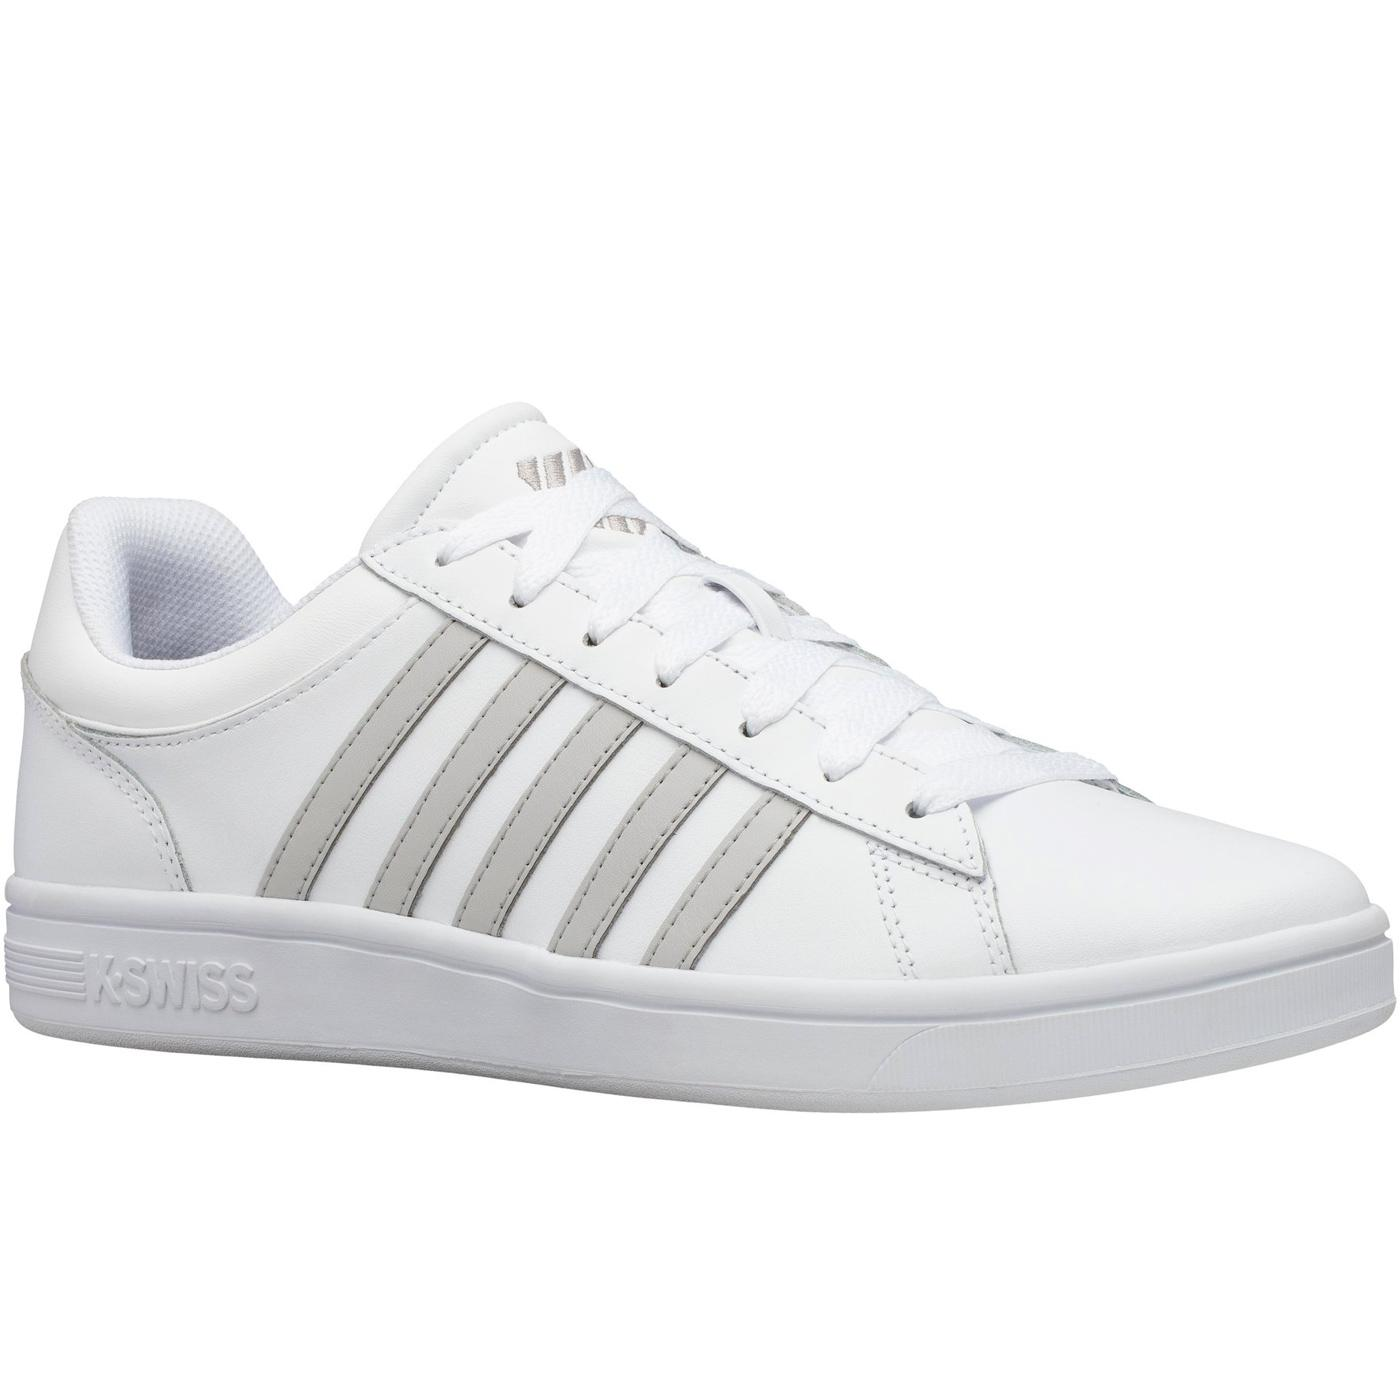 Court Winston K-SWISS Men's Retro Trainers (W/VB)